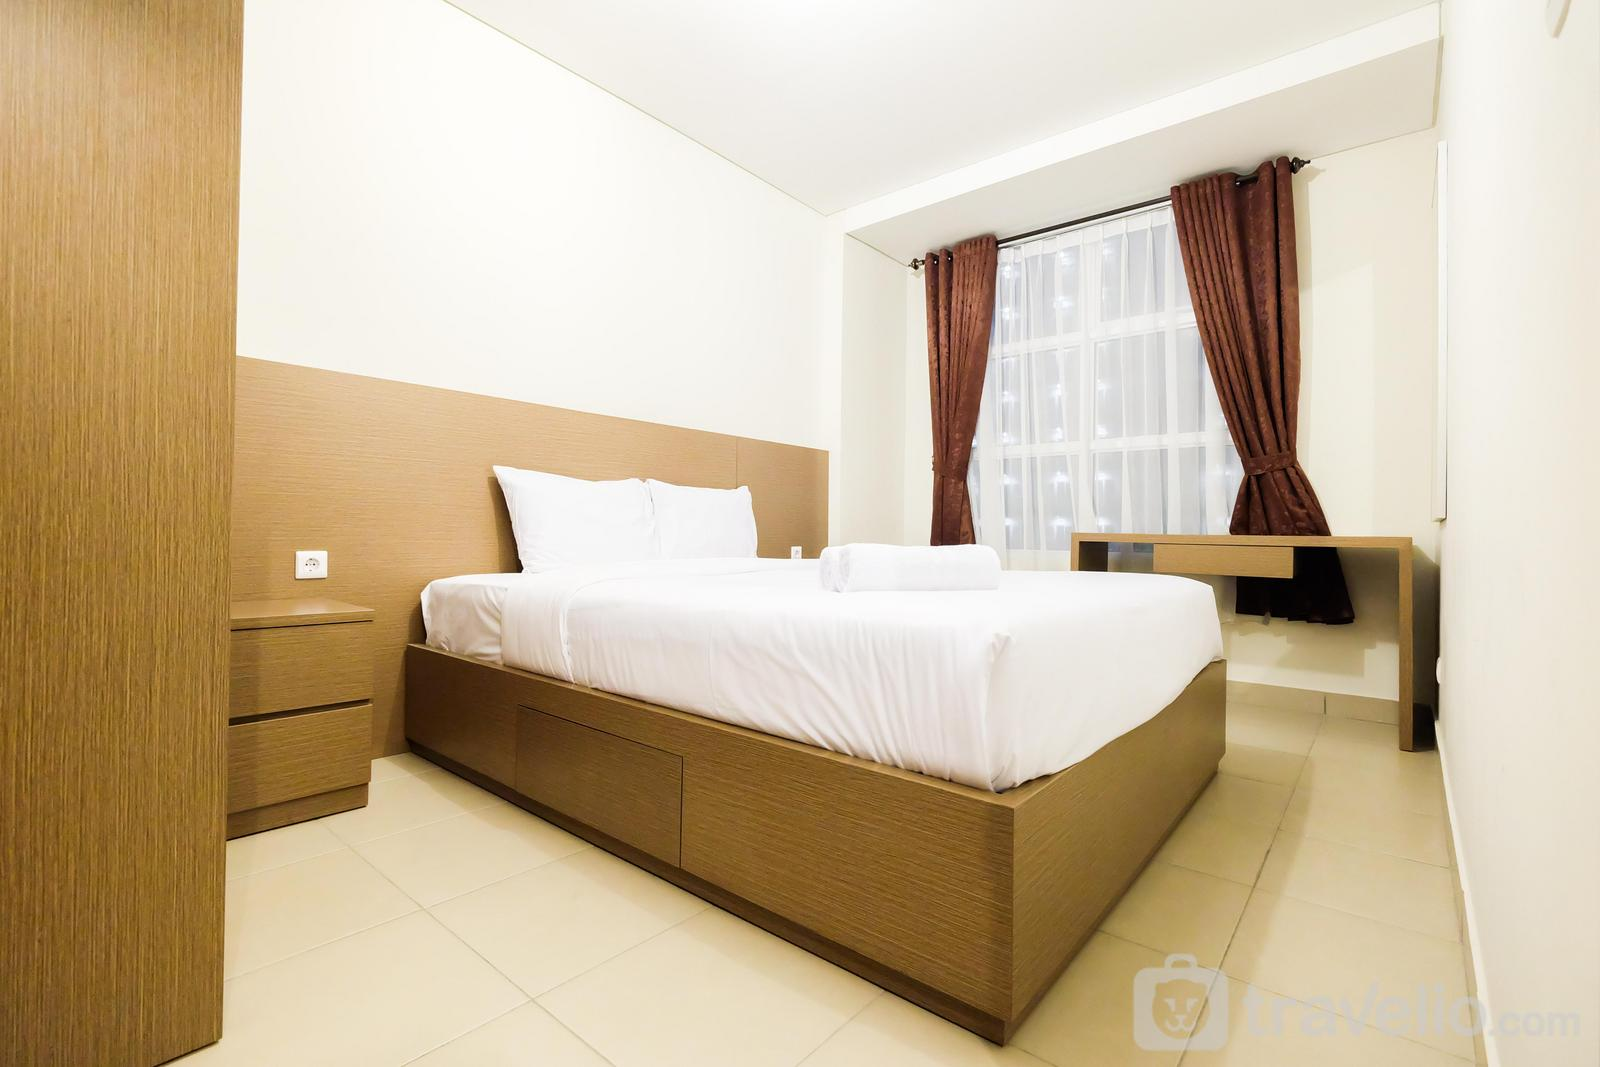 Saveria BSD City - Clean and Comfy 1BR Saveria Apartment near AEON Mall By Travelio